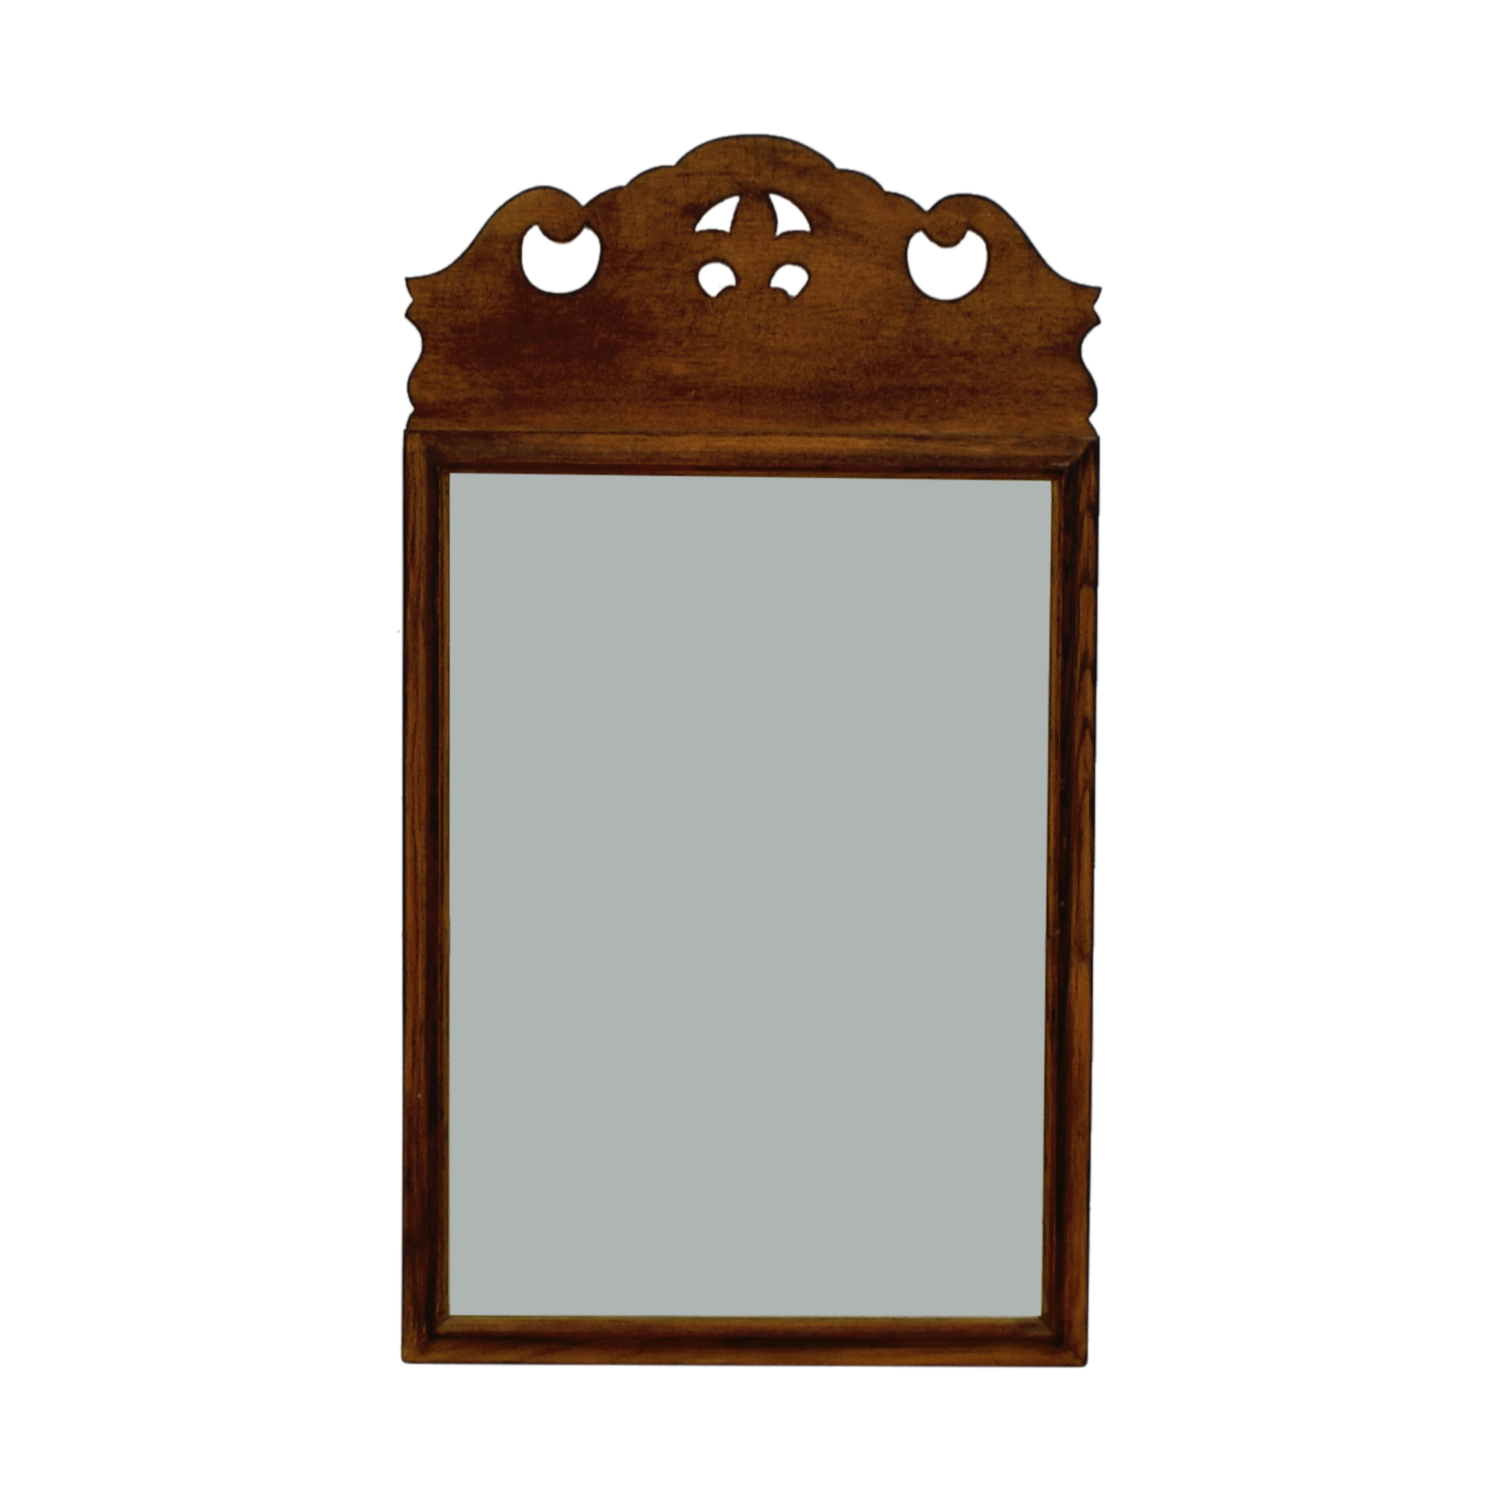 Kling Factories Kling Factories Oak Wood Framed Mirror second hand